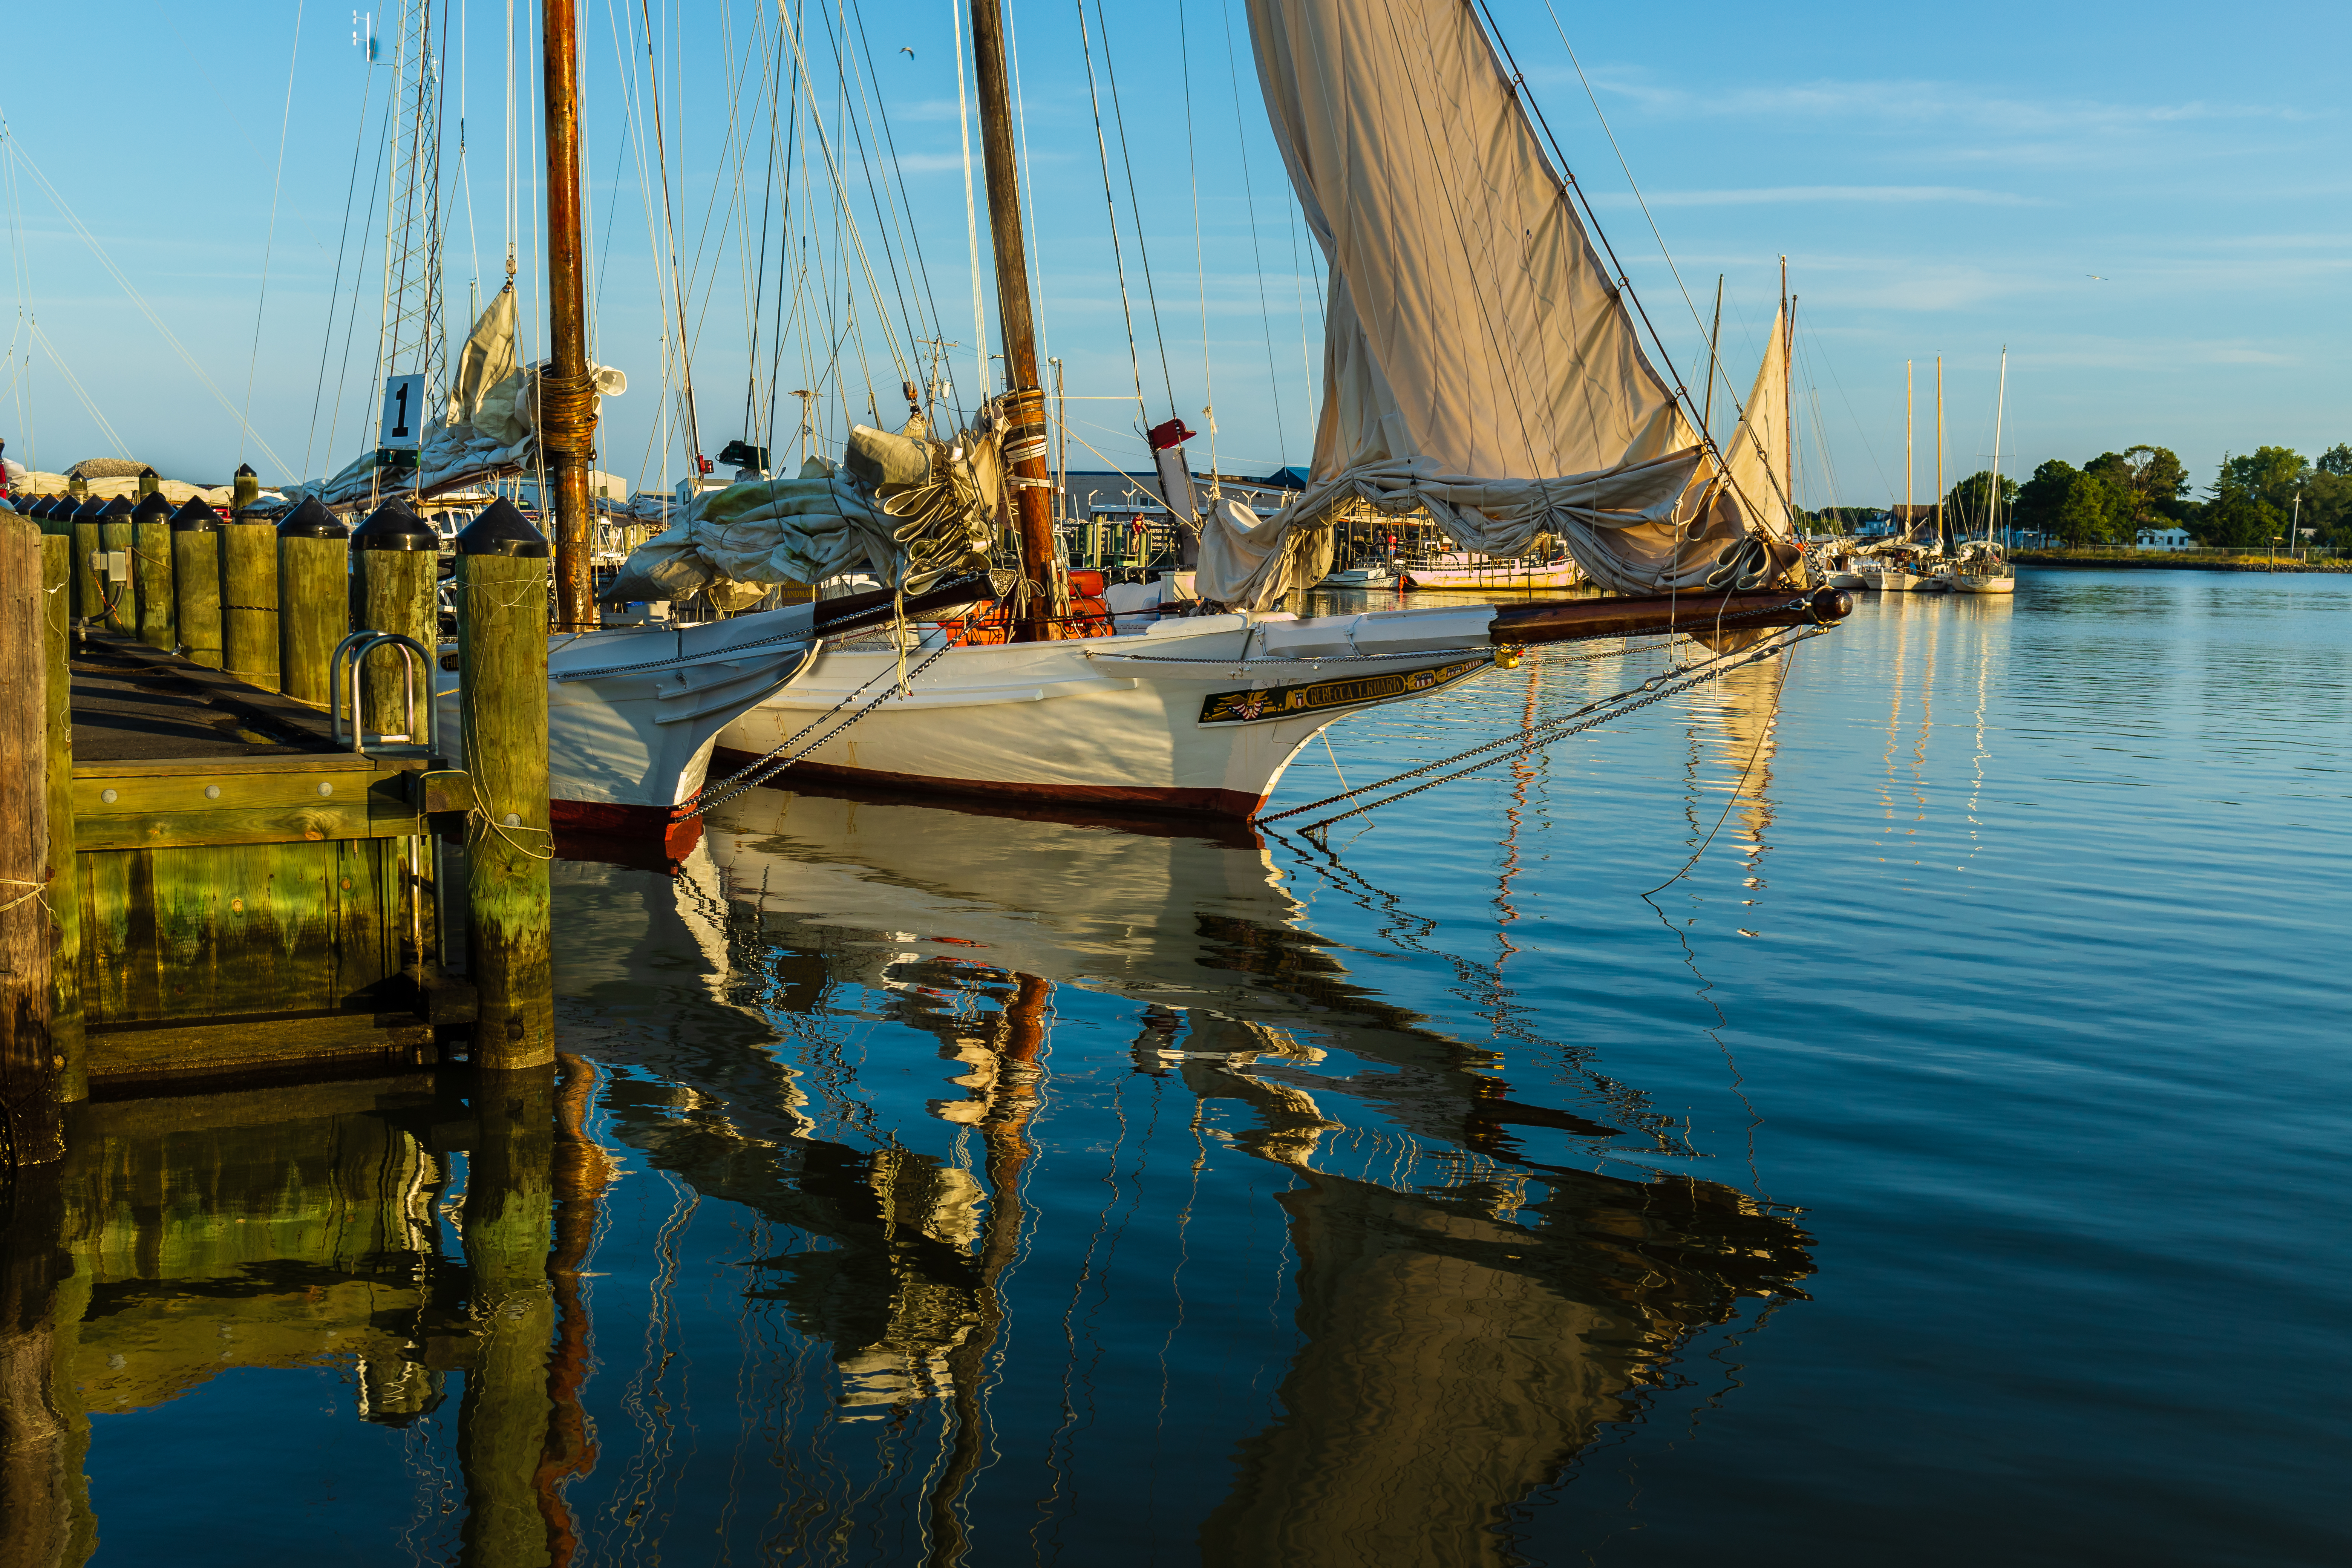 Skipjack Rebecca T Ruark at dock just after dawn